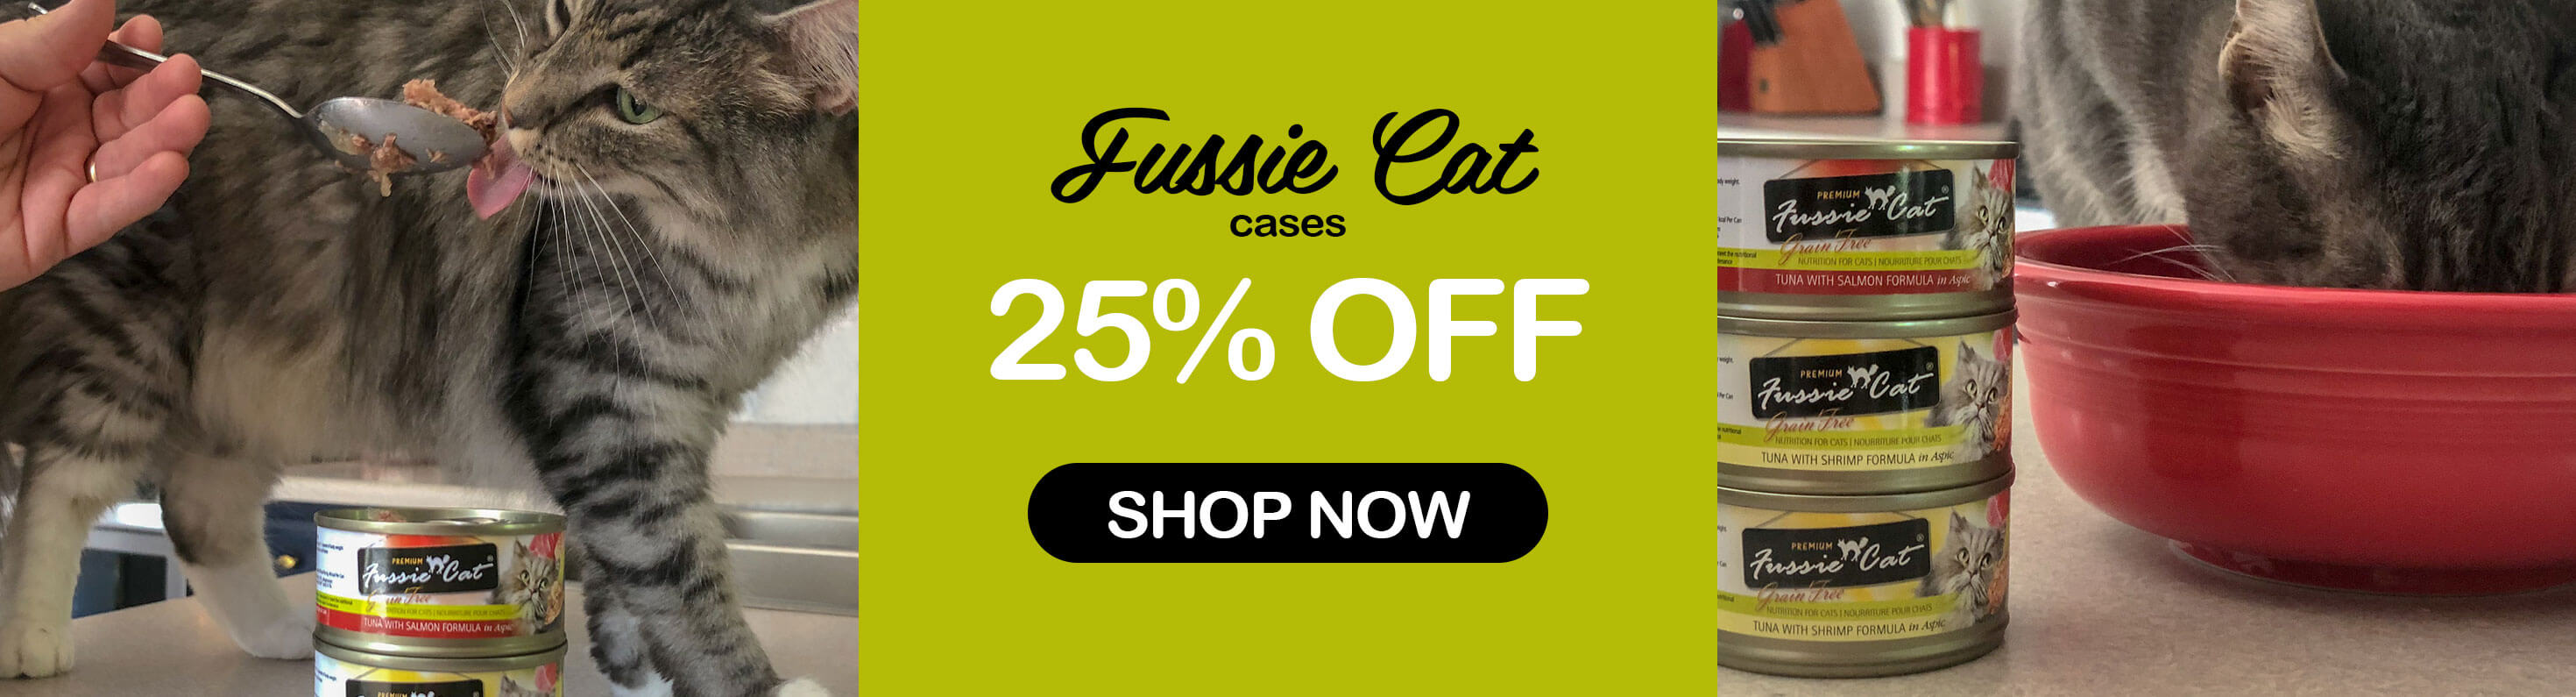 Fussie Cat Cases